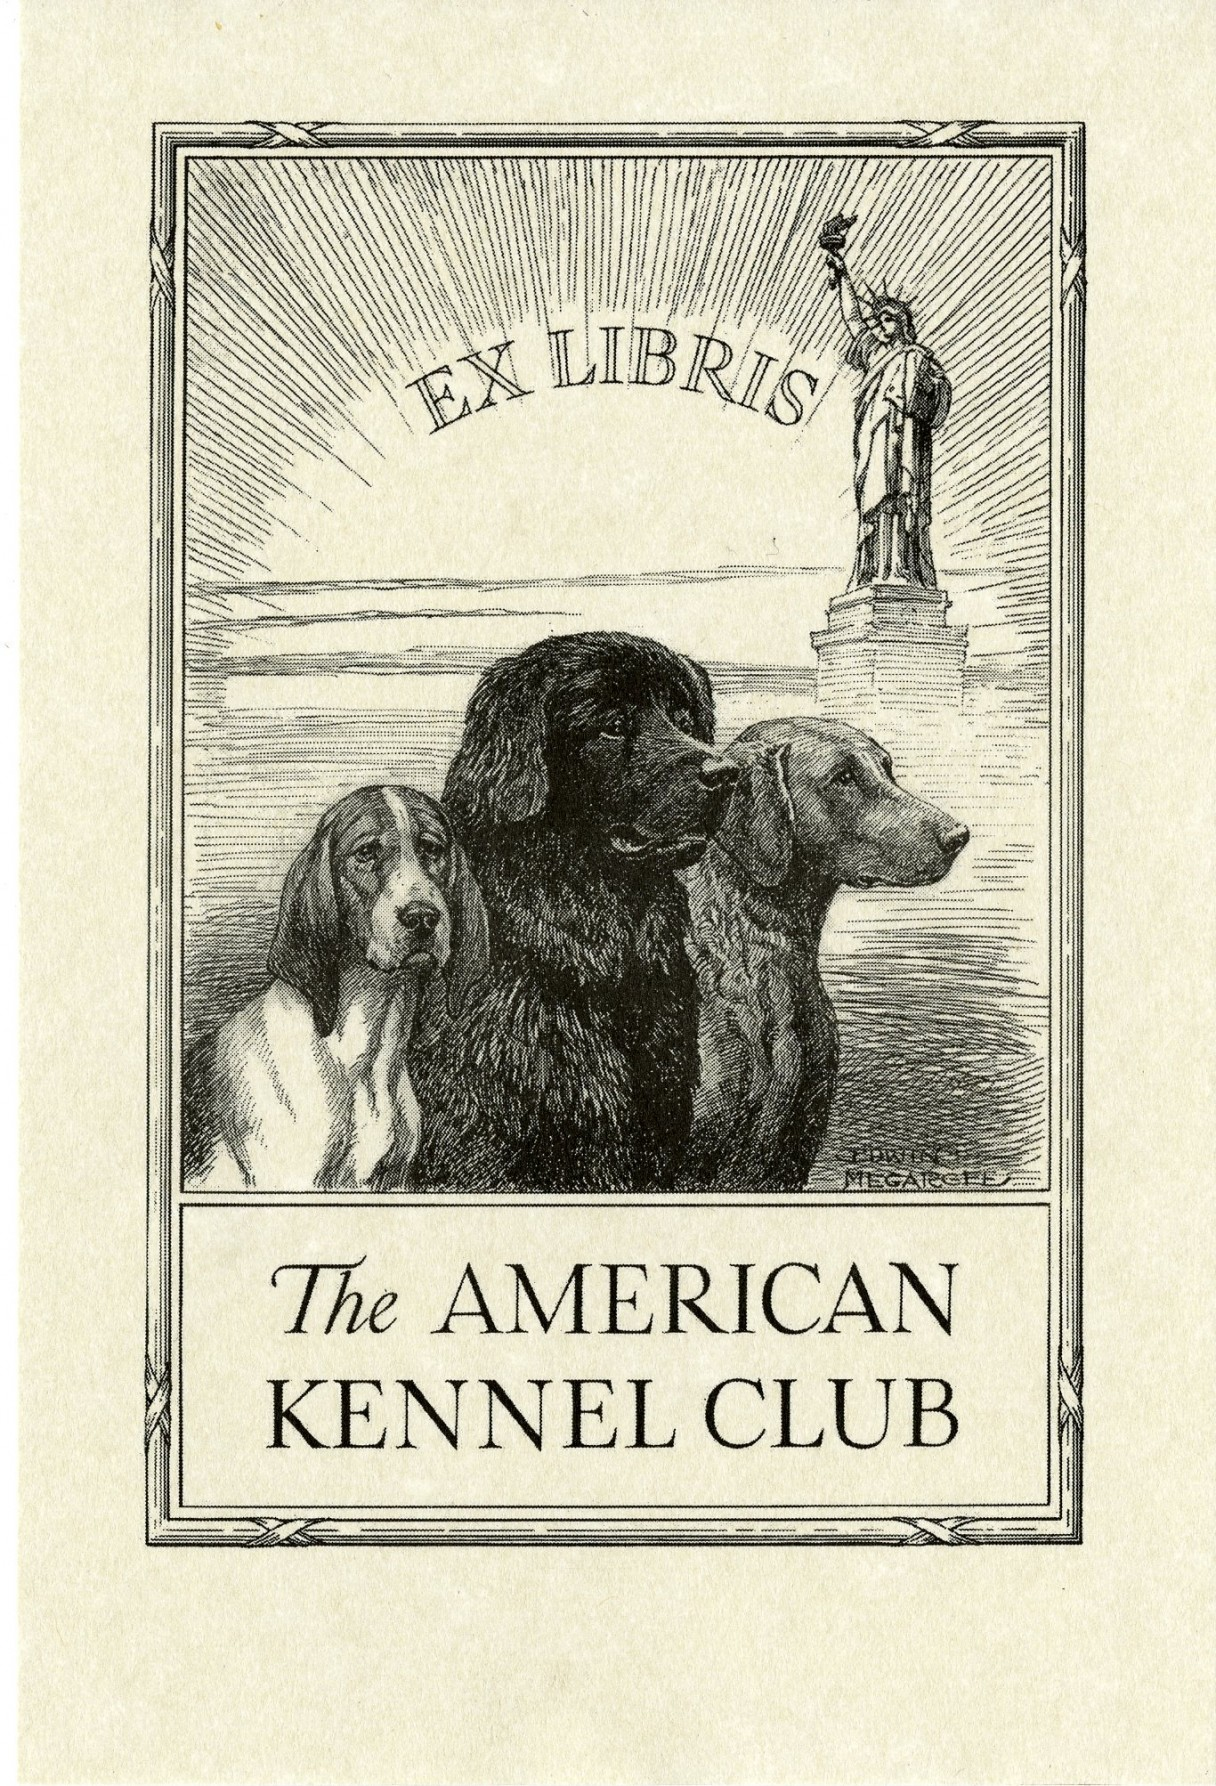 What services does the American Kennel Club offer?